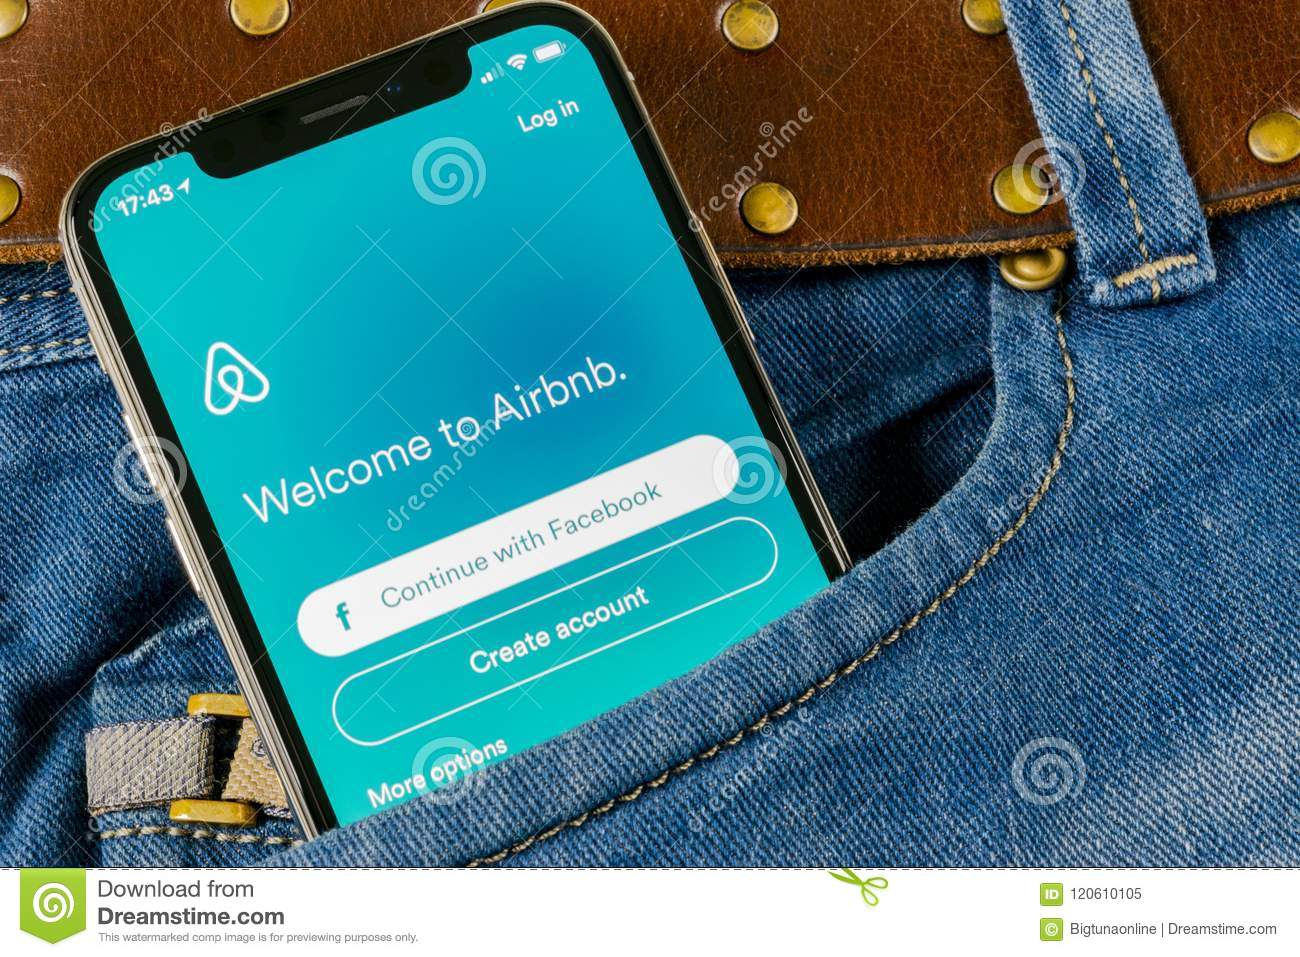 Airbnb Application Icon On Apple IPhone X Screen Close-up In